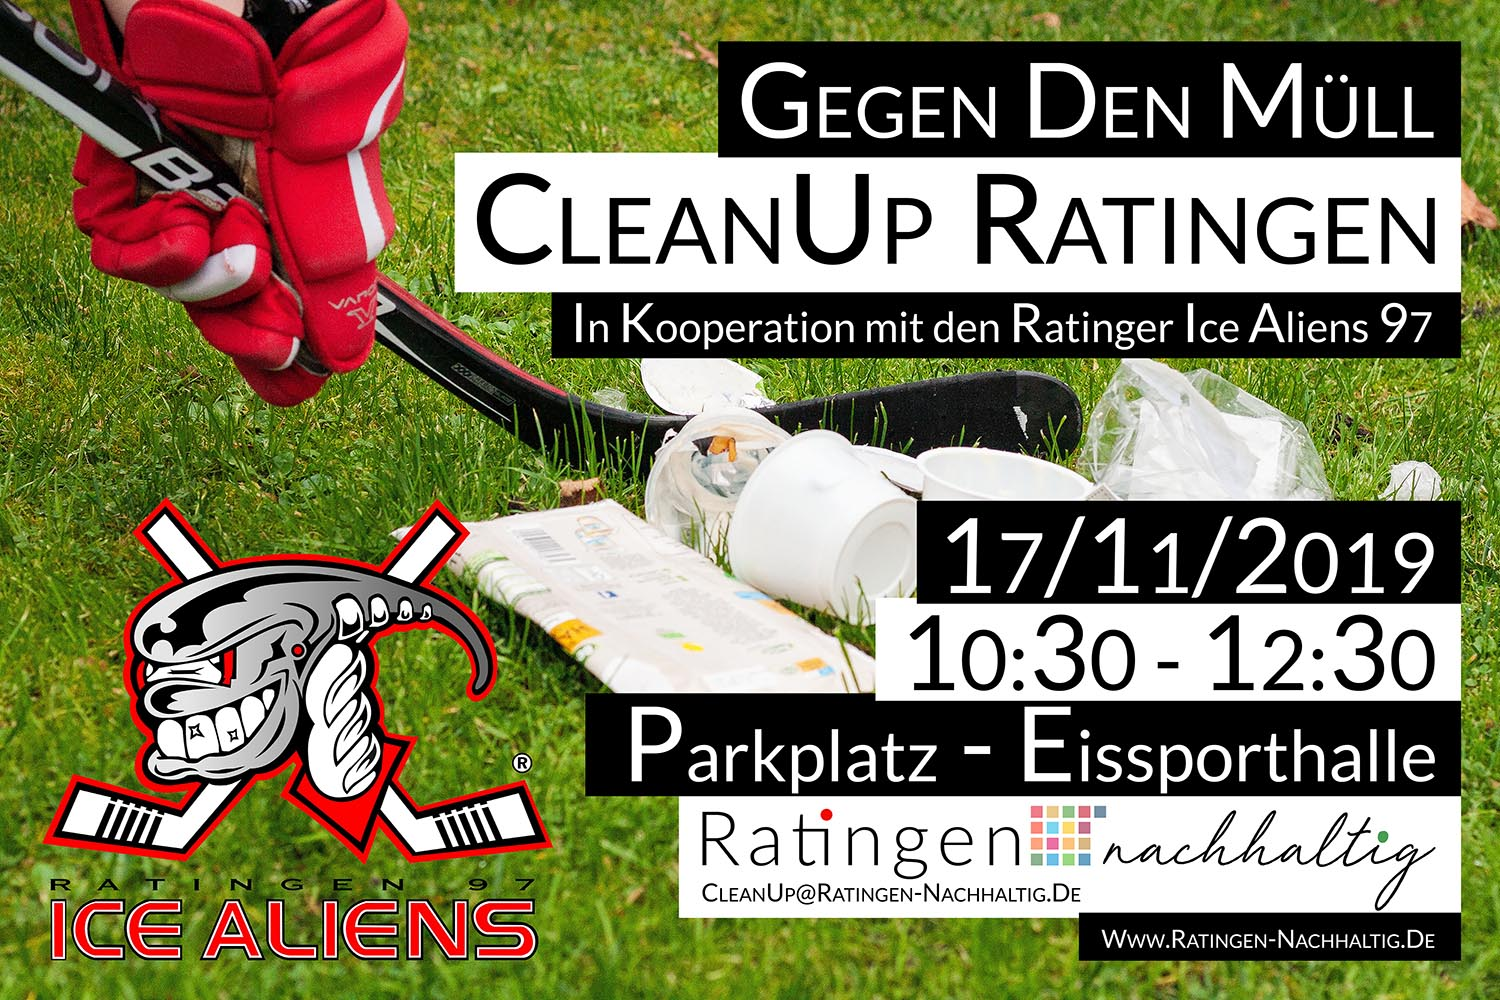 CleanUp Ratingen an der Eissporthalle